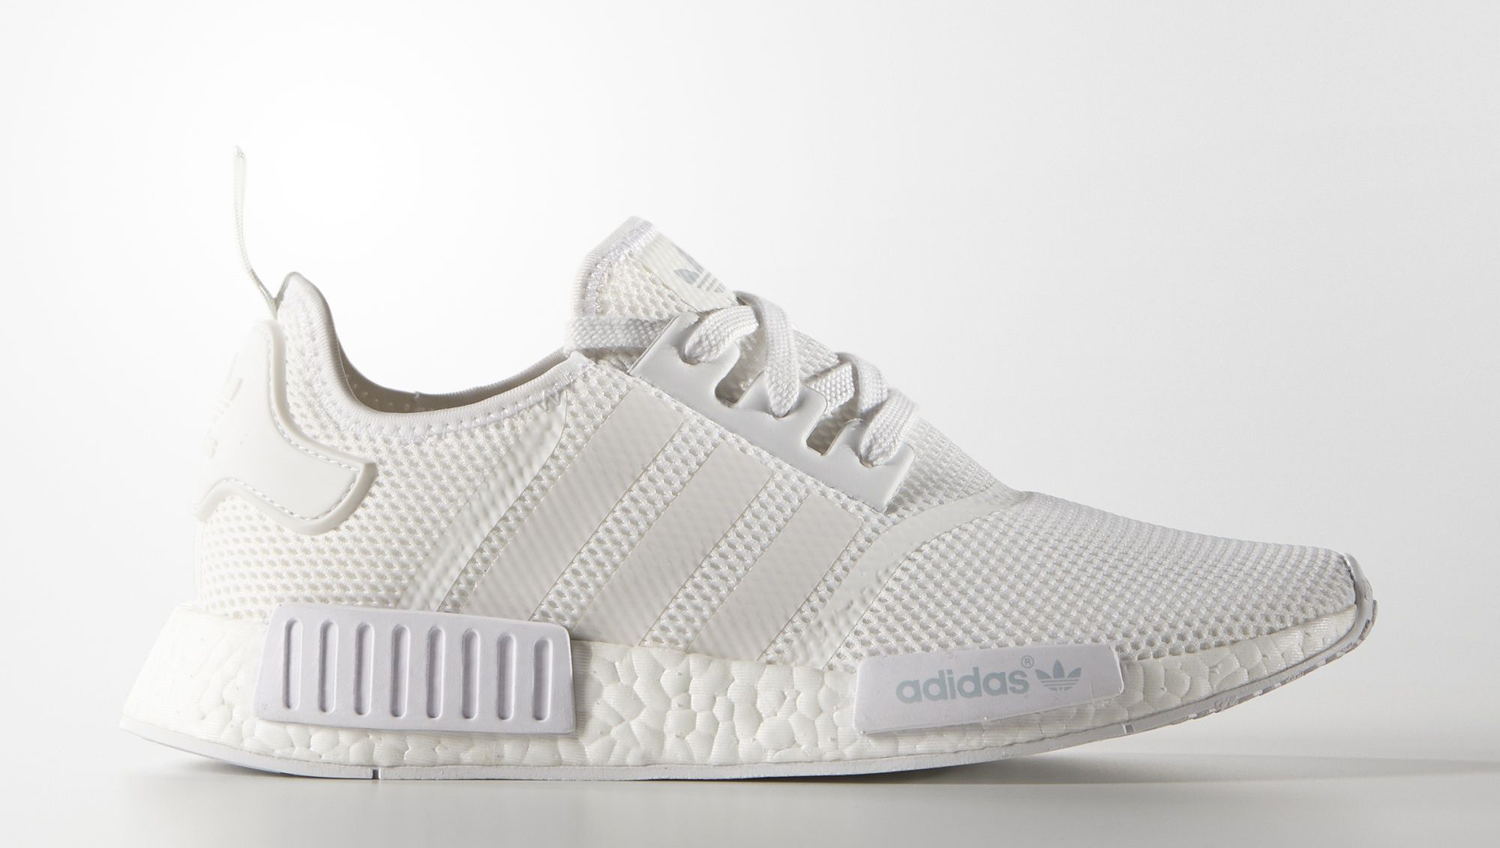 Triple White Adidas NMD S79166